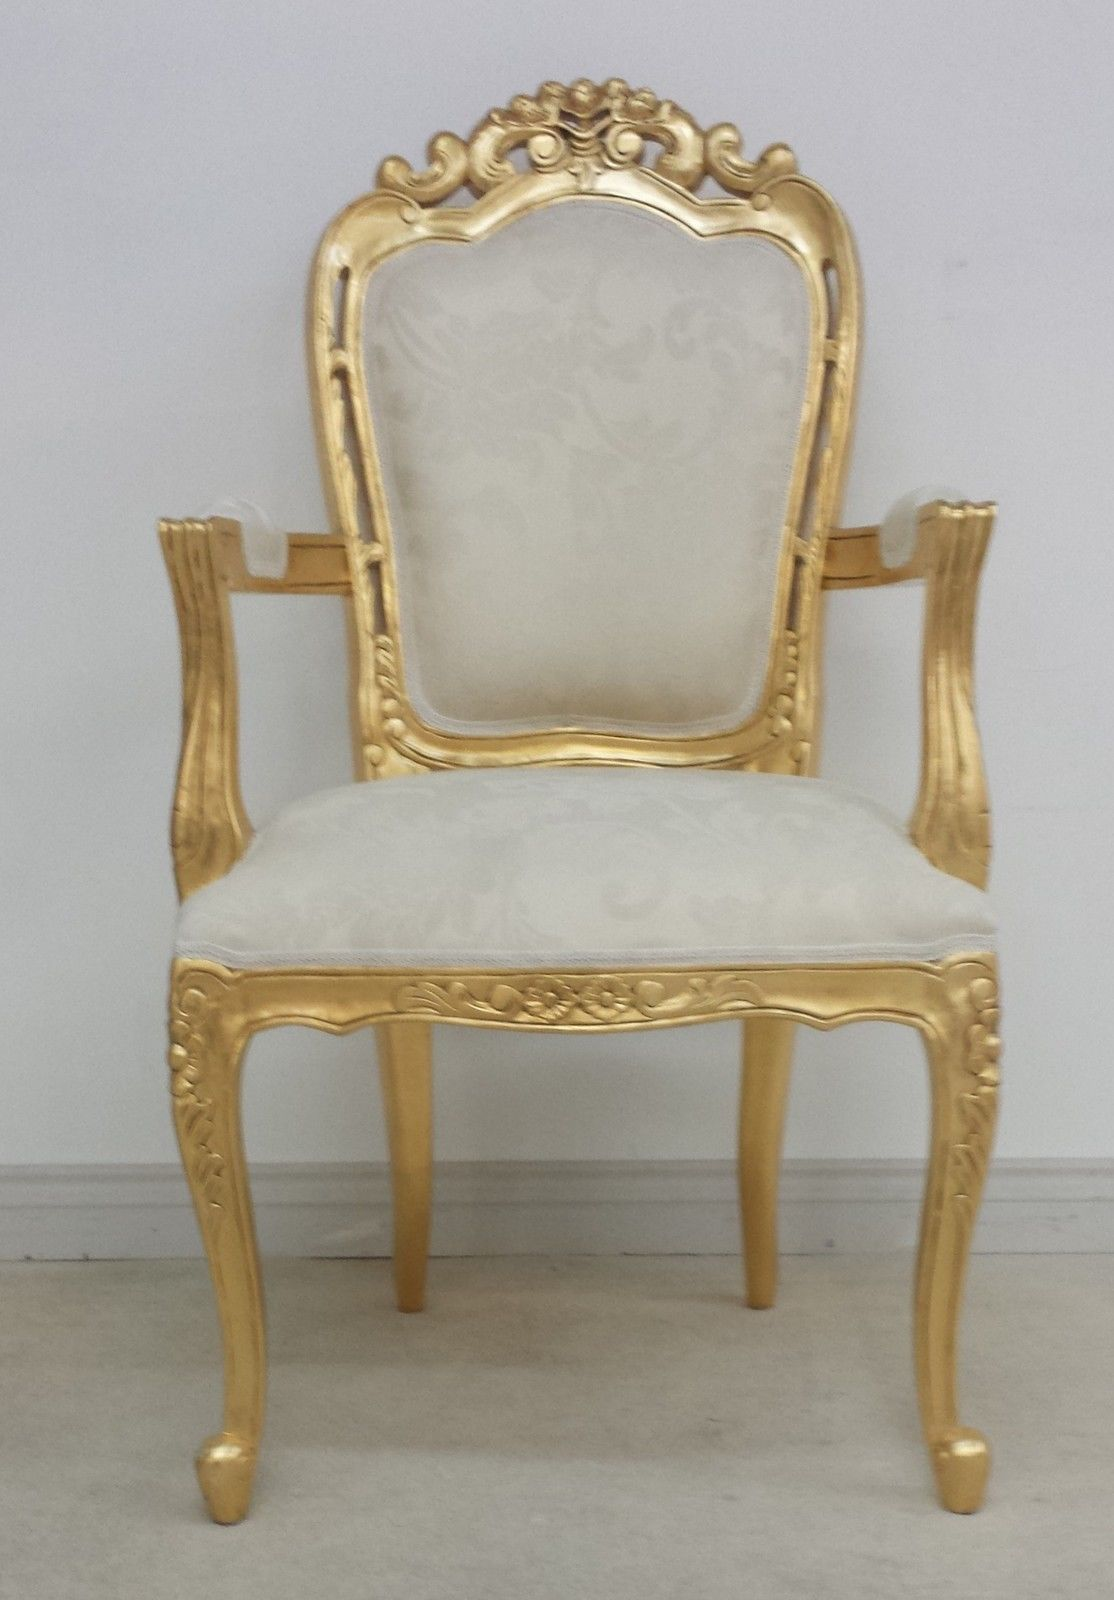 gold dining chairs baby lounge chair franciscan in gilded and ivory cream or